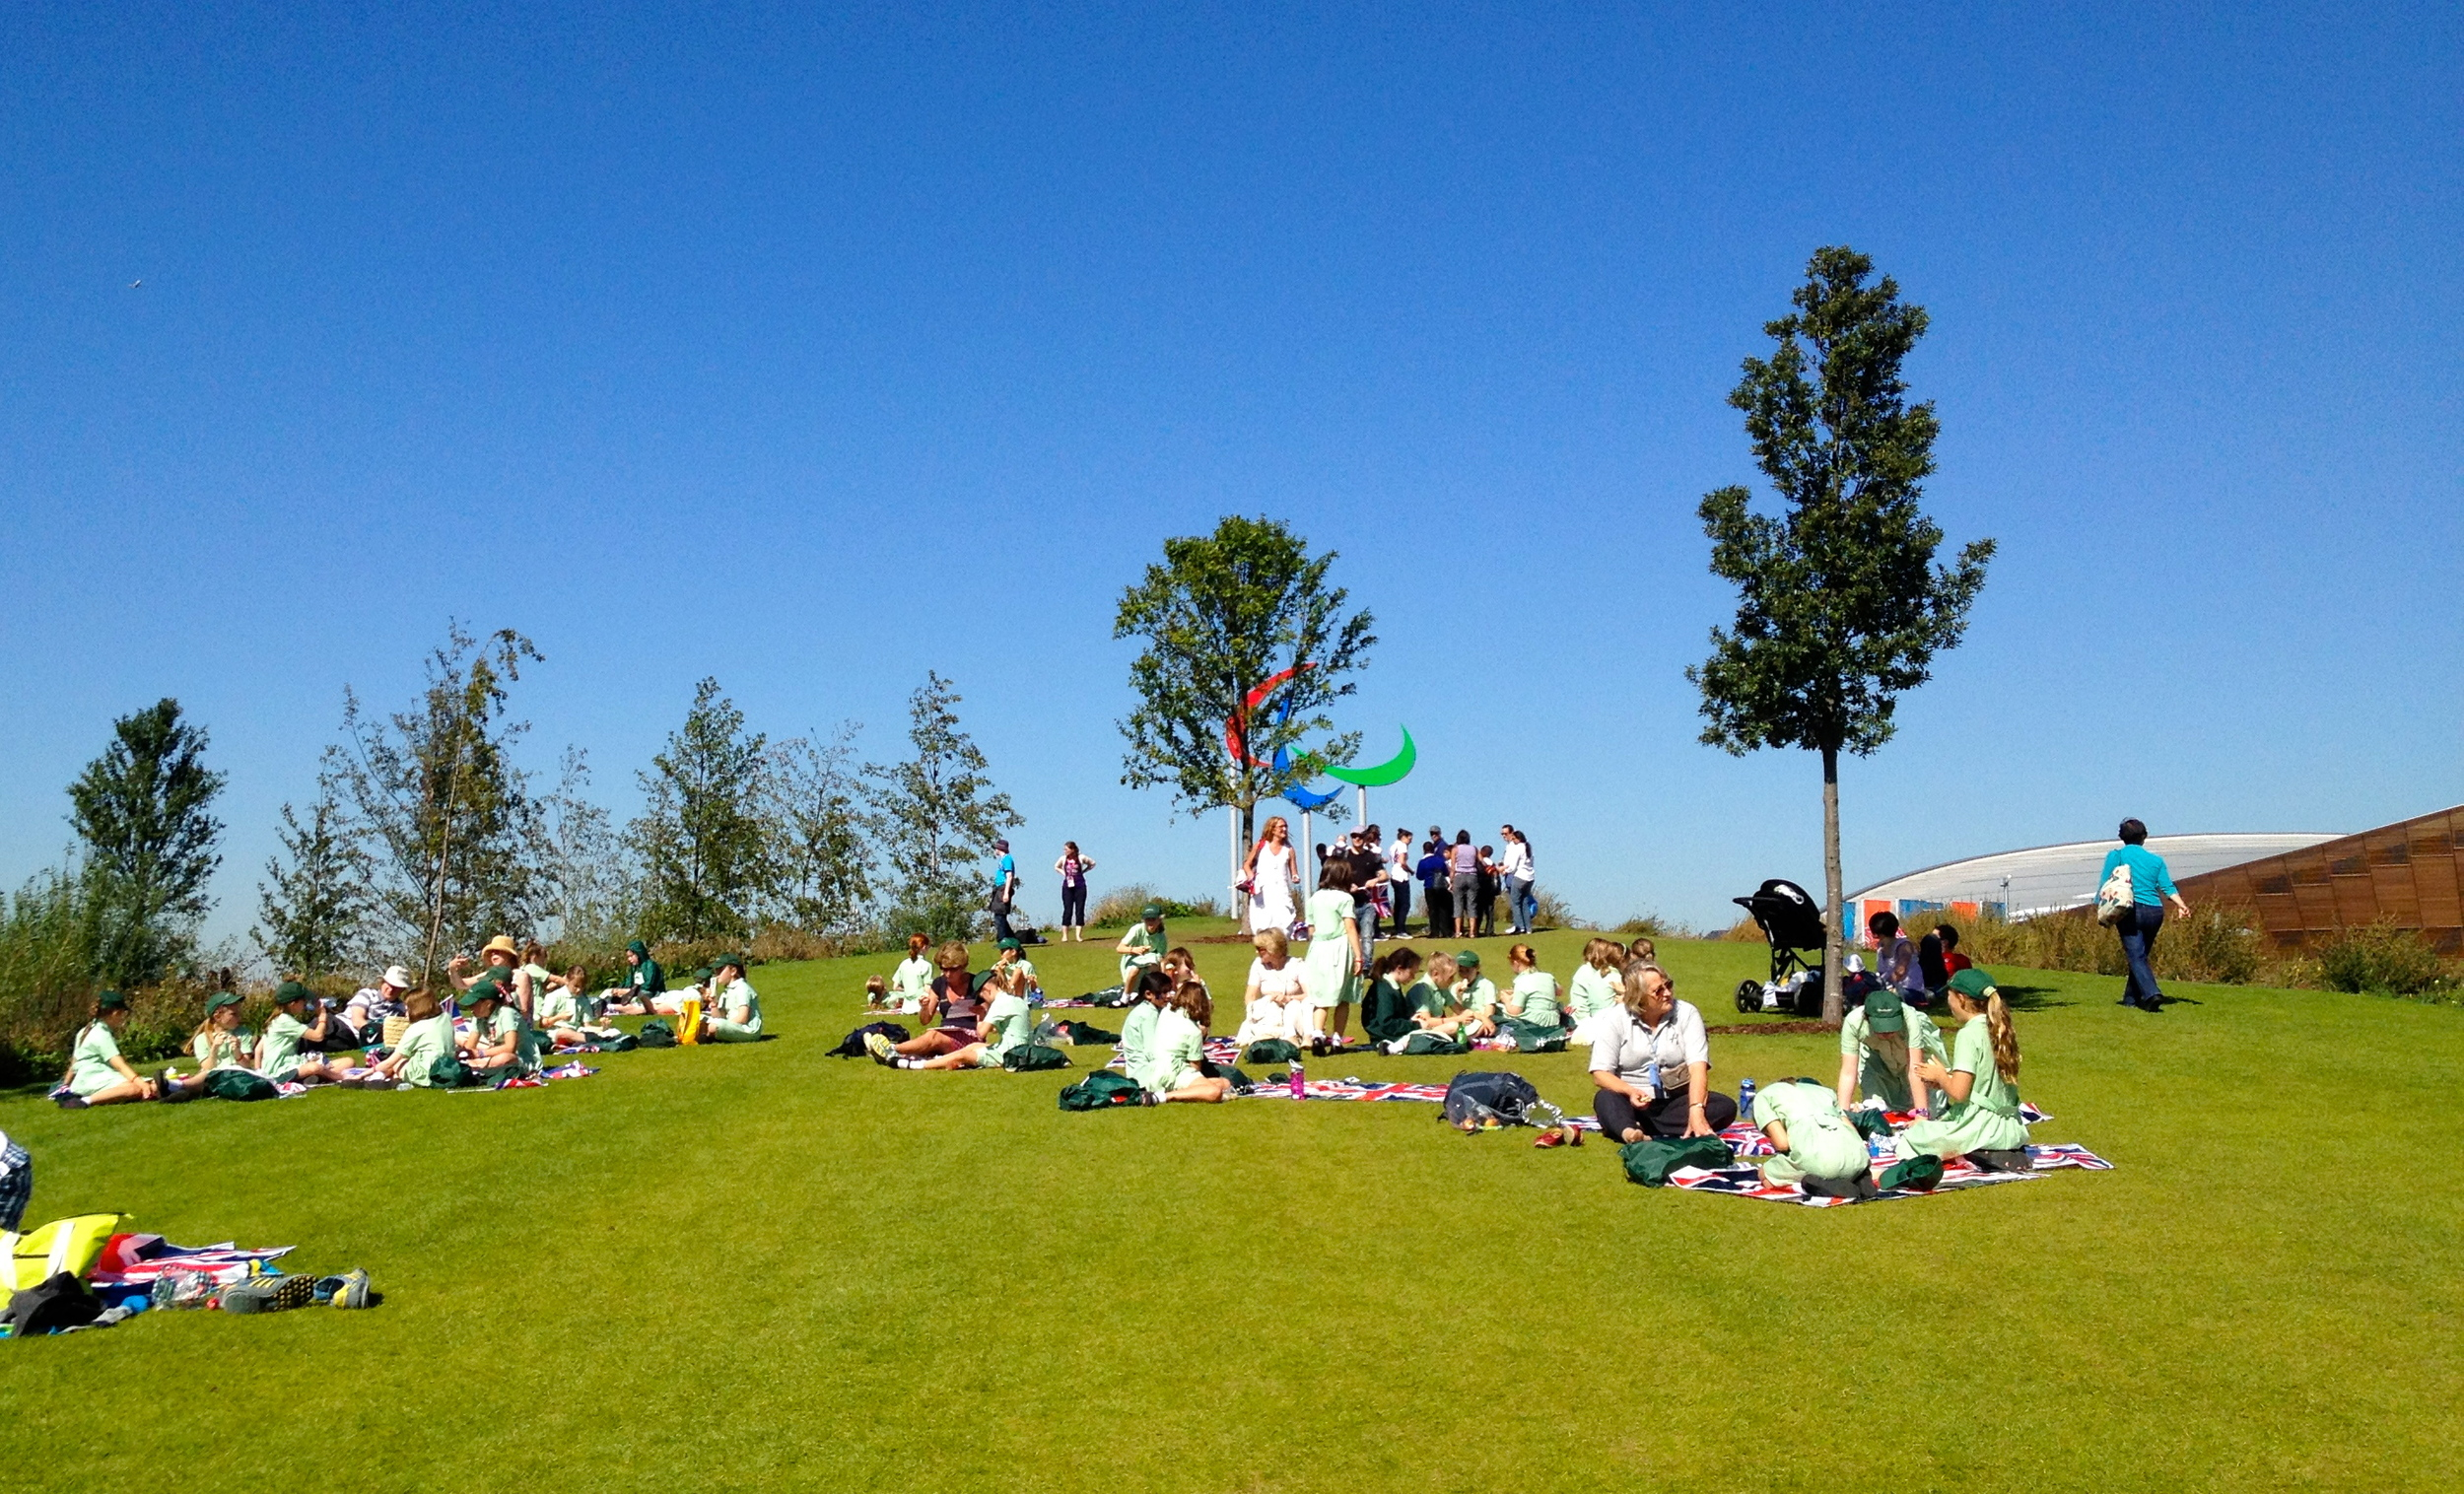 School children enjoying picnic in the Olympics Park during the 2012 London Paralympic Games.